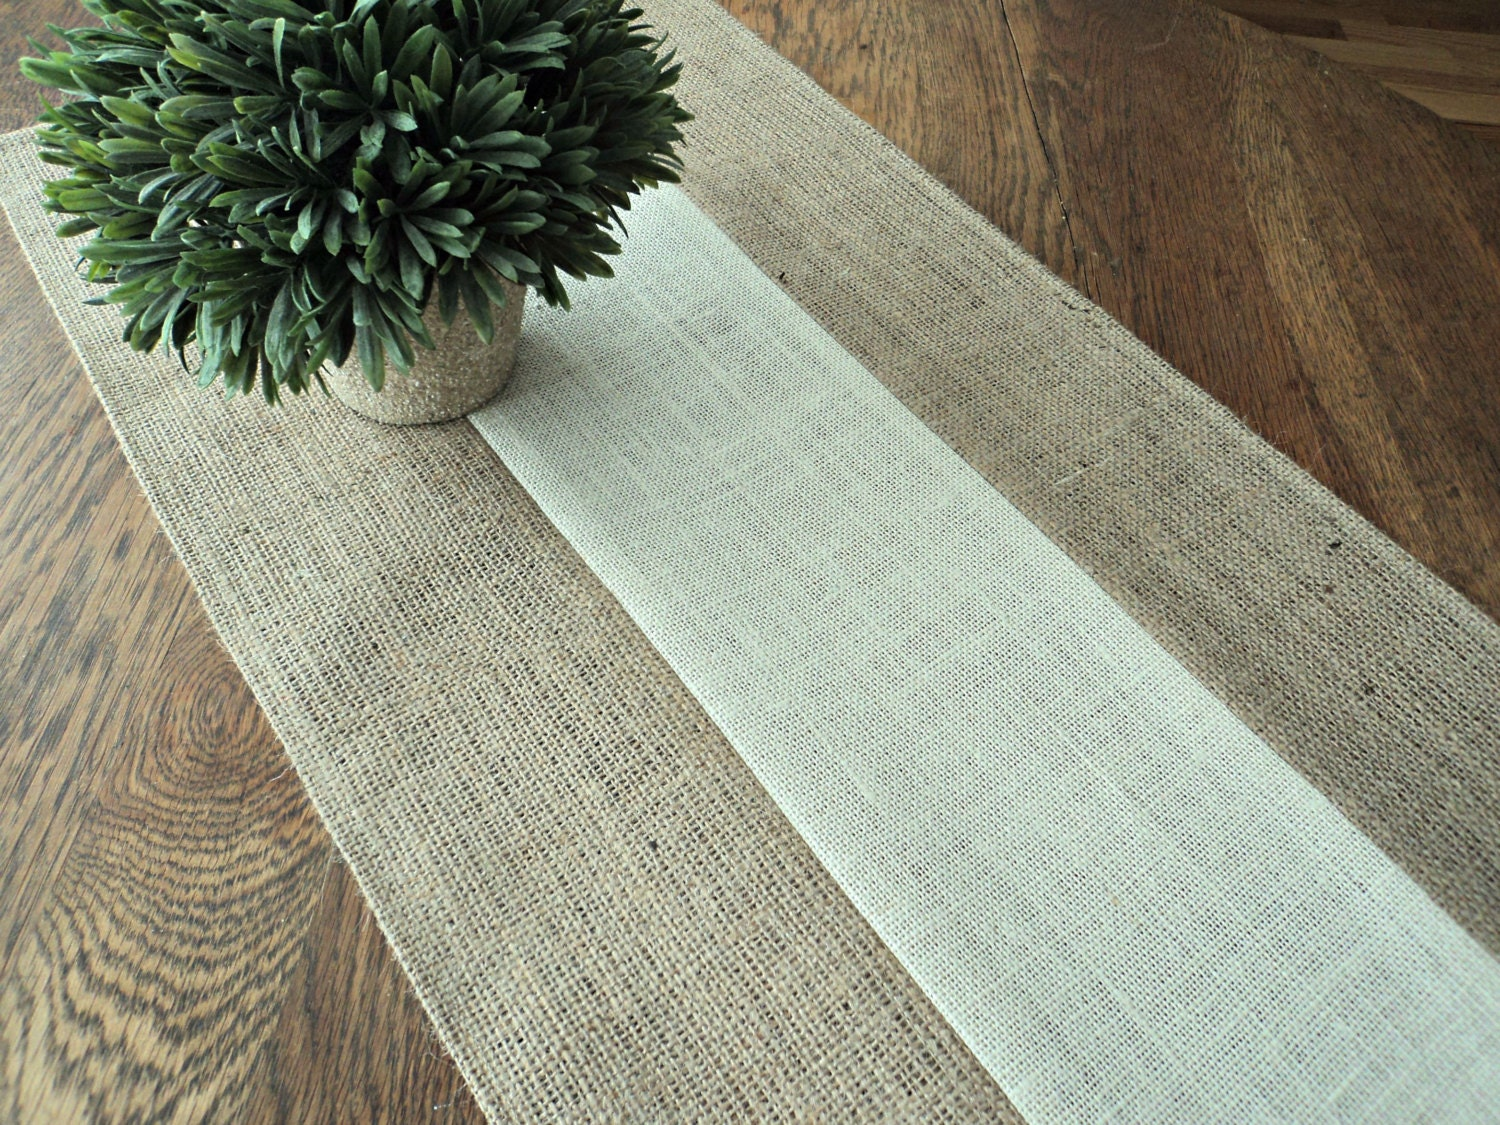 Natural and Ivory Burlap Table Runner Holiday Table Runner : ilfullxfull832796544mfx1 from www.etsy.com size 1500 x 1125 jpeg 684kB